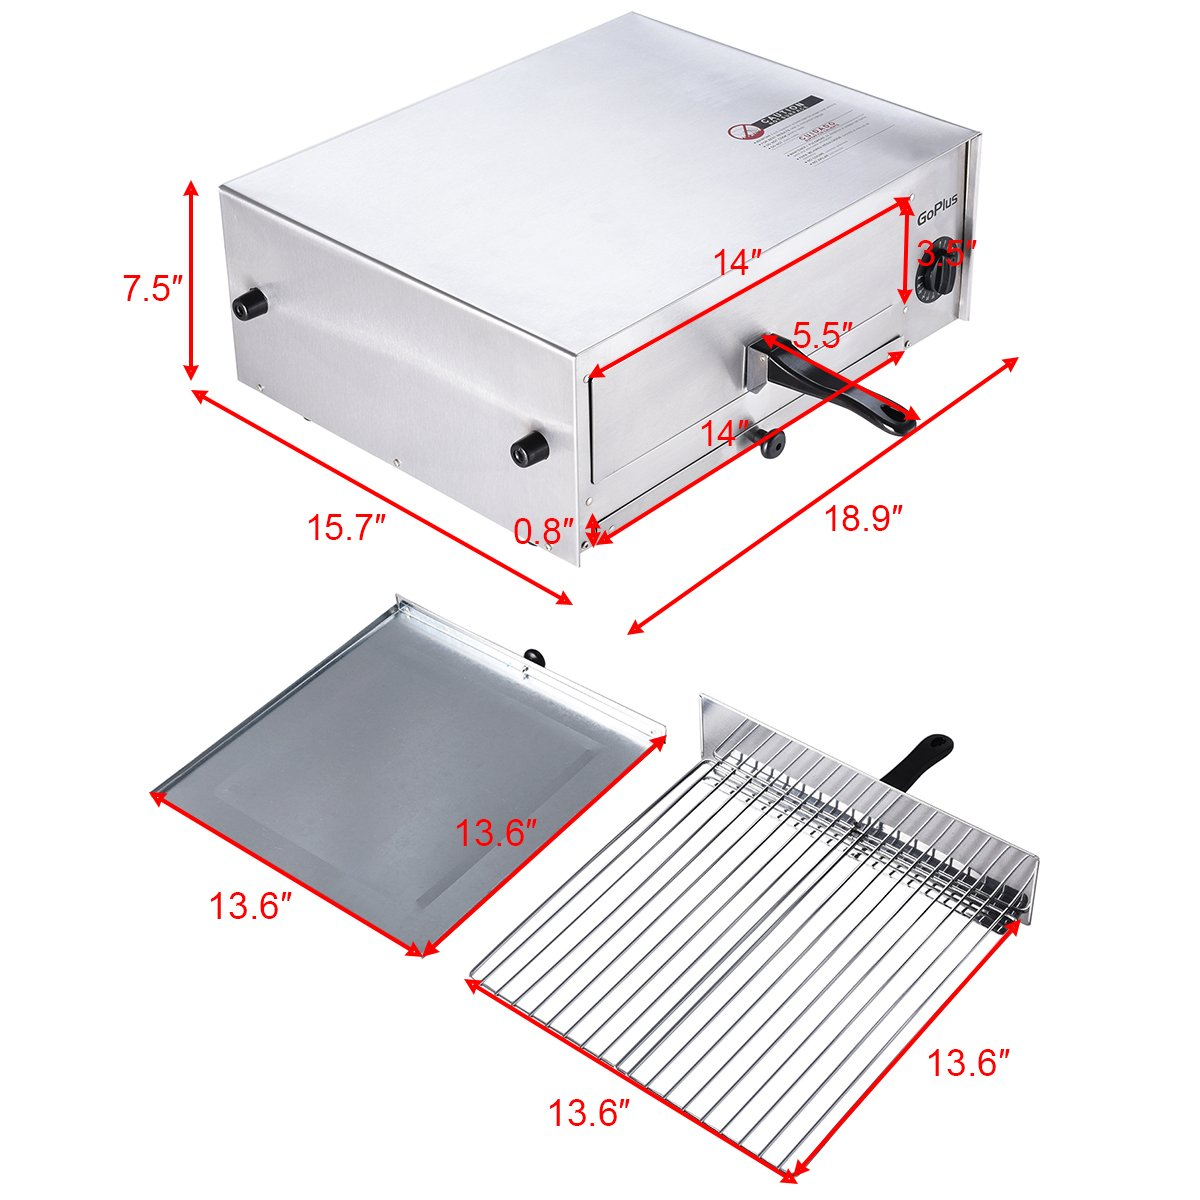 Goplus Pizza Oven, Stainless Steel Pizza Maker Machine, Pizza Baker W/Snack Pan, Snack Maker, Counter Top, for Commercial and Home by Goplus (Image #3)